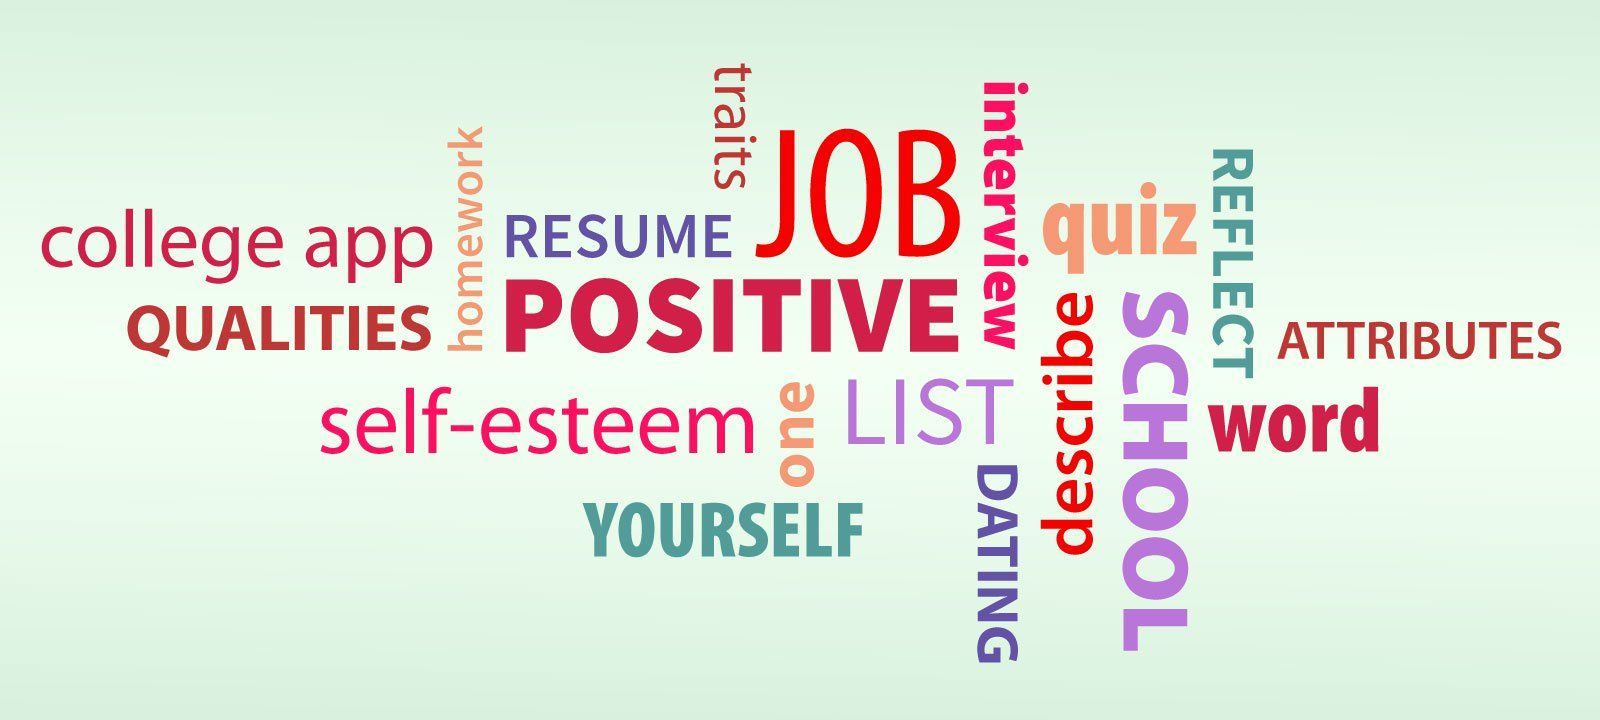 How to Describe Yourself: 180 Words for Your Positive Qualities ...